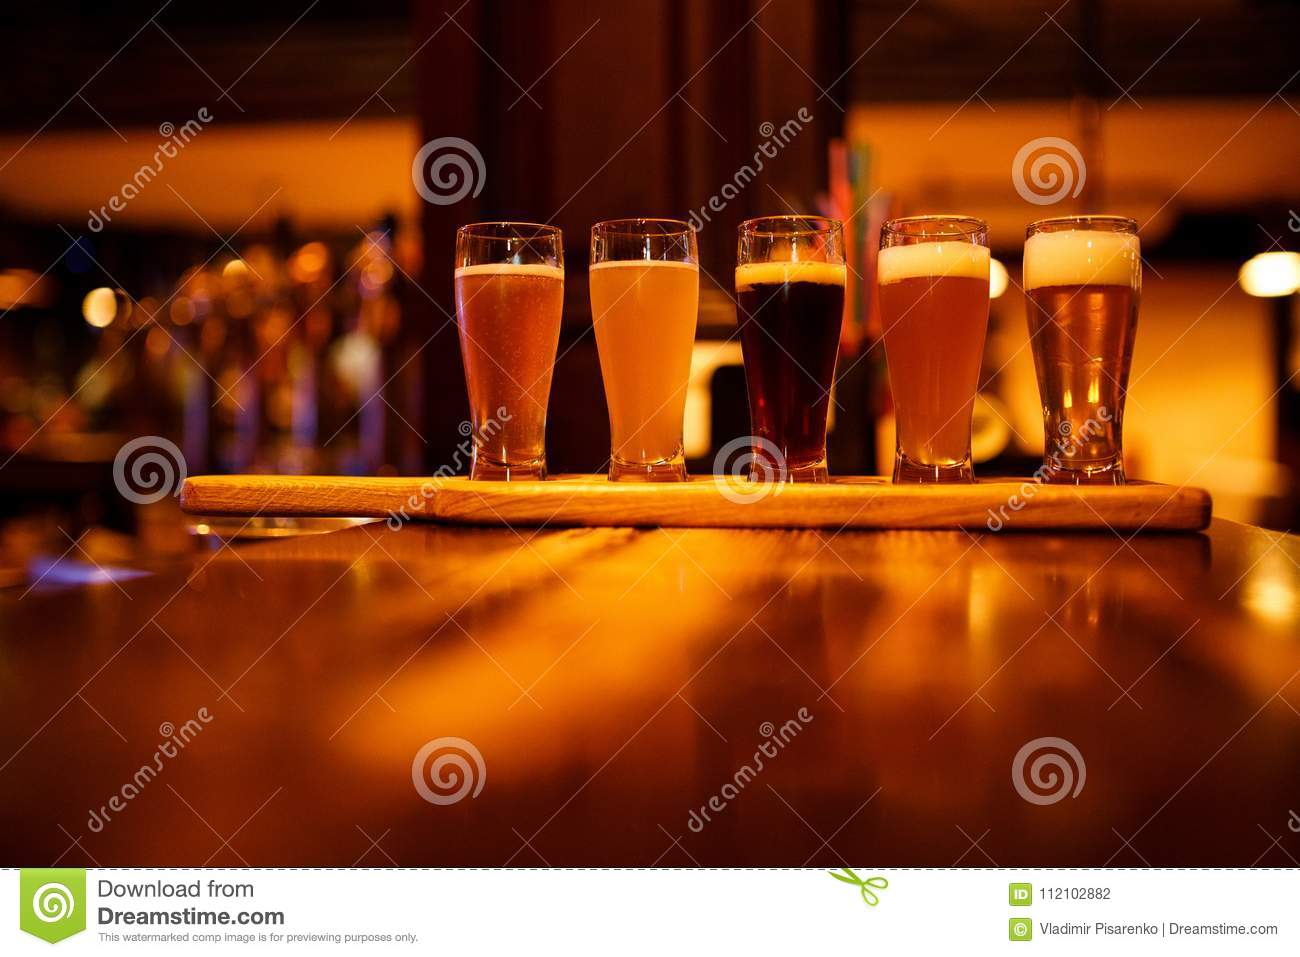 Various types of craft beer in small glasses on a wooden table in a pub.